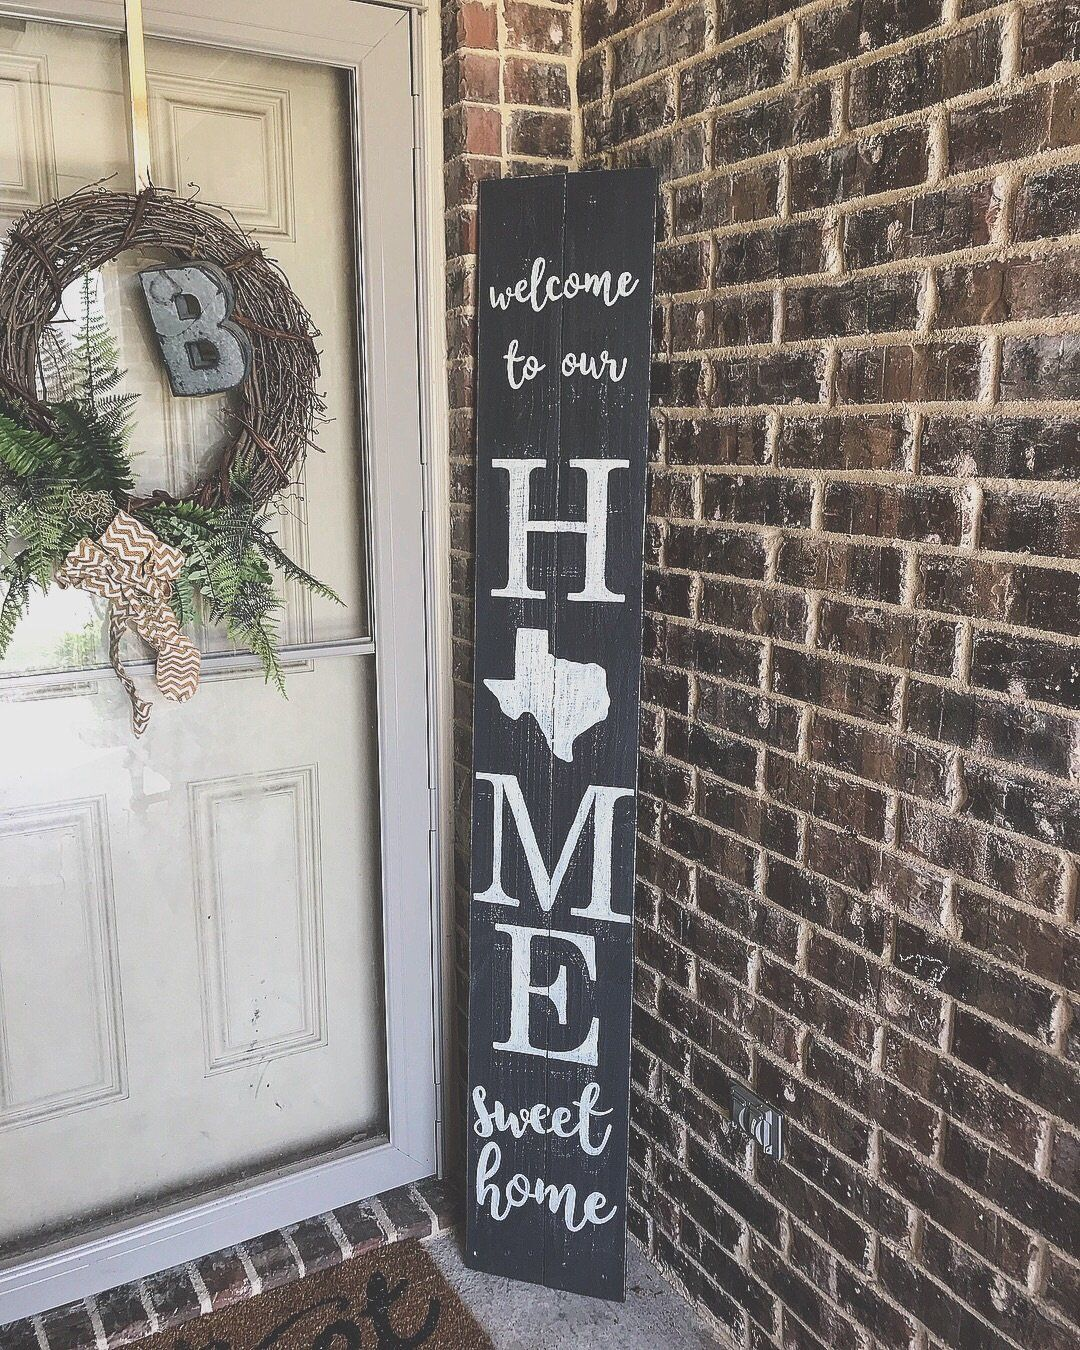 6ft Welcome To Our Home Sweet Home Tx Porch Sign Porch Signs Patio Signs Christmas Decor Diy